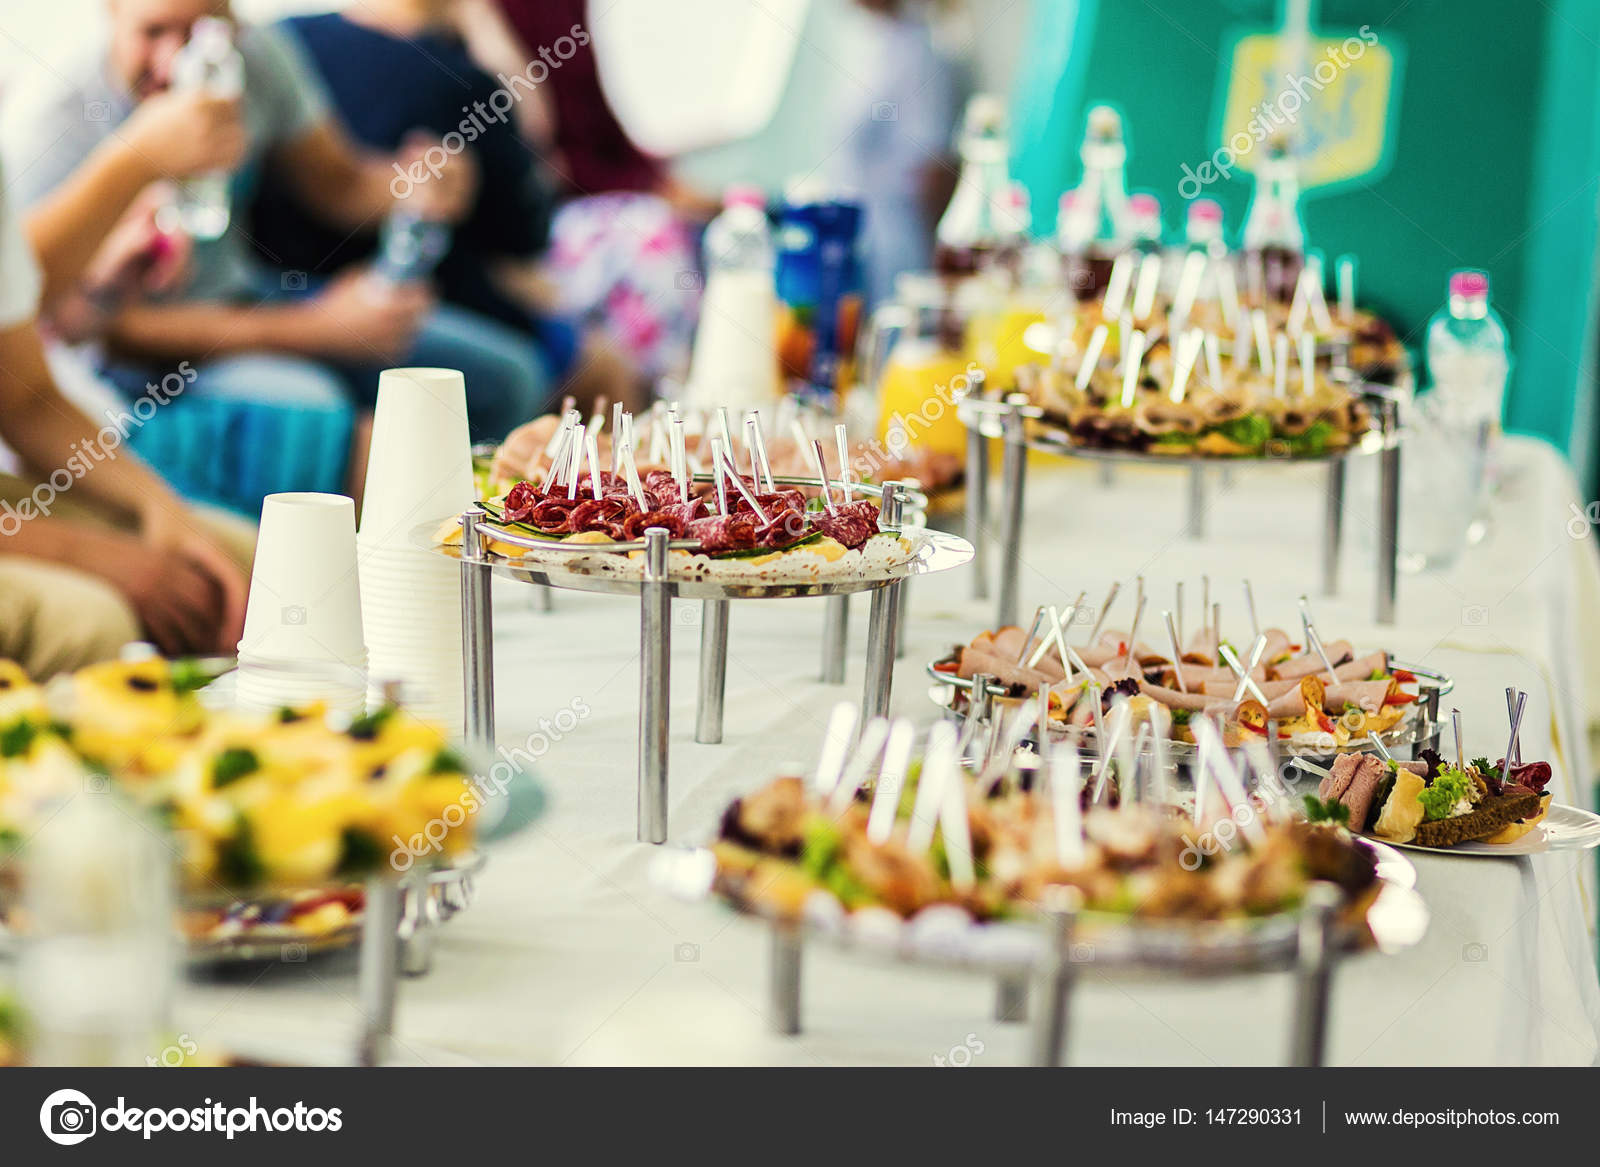 Buffet Table, Canape, Sandwiches, Snacks, Holiday Table, Sliced, Glasses,  Celebration, New Year, Christmas, Fourchette, Catering, Table Setting, ...